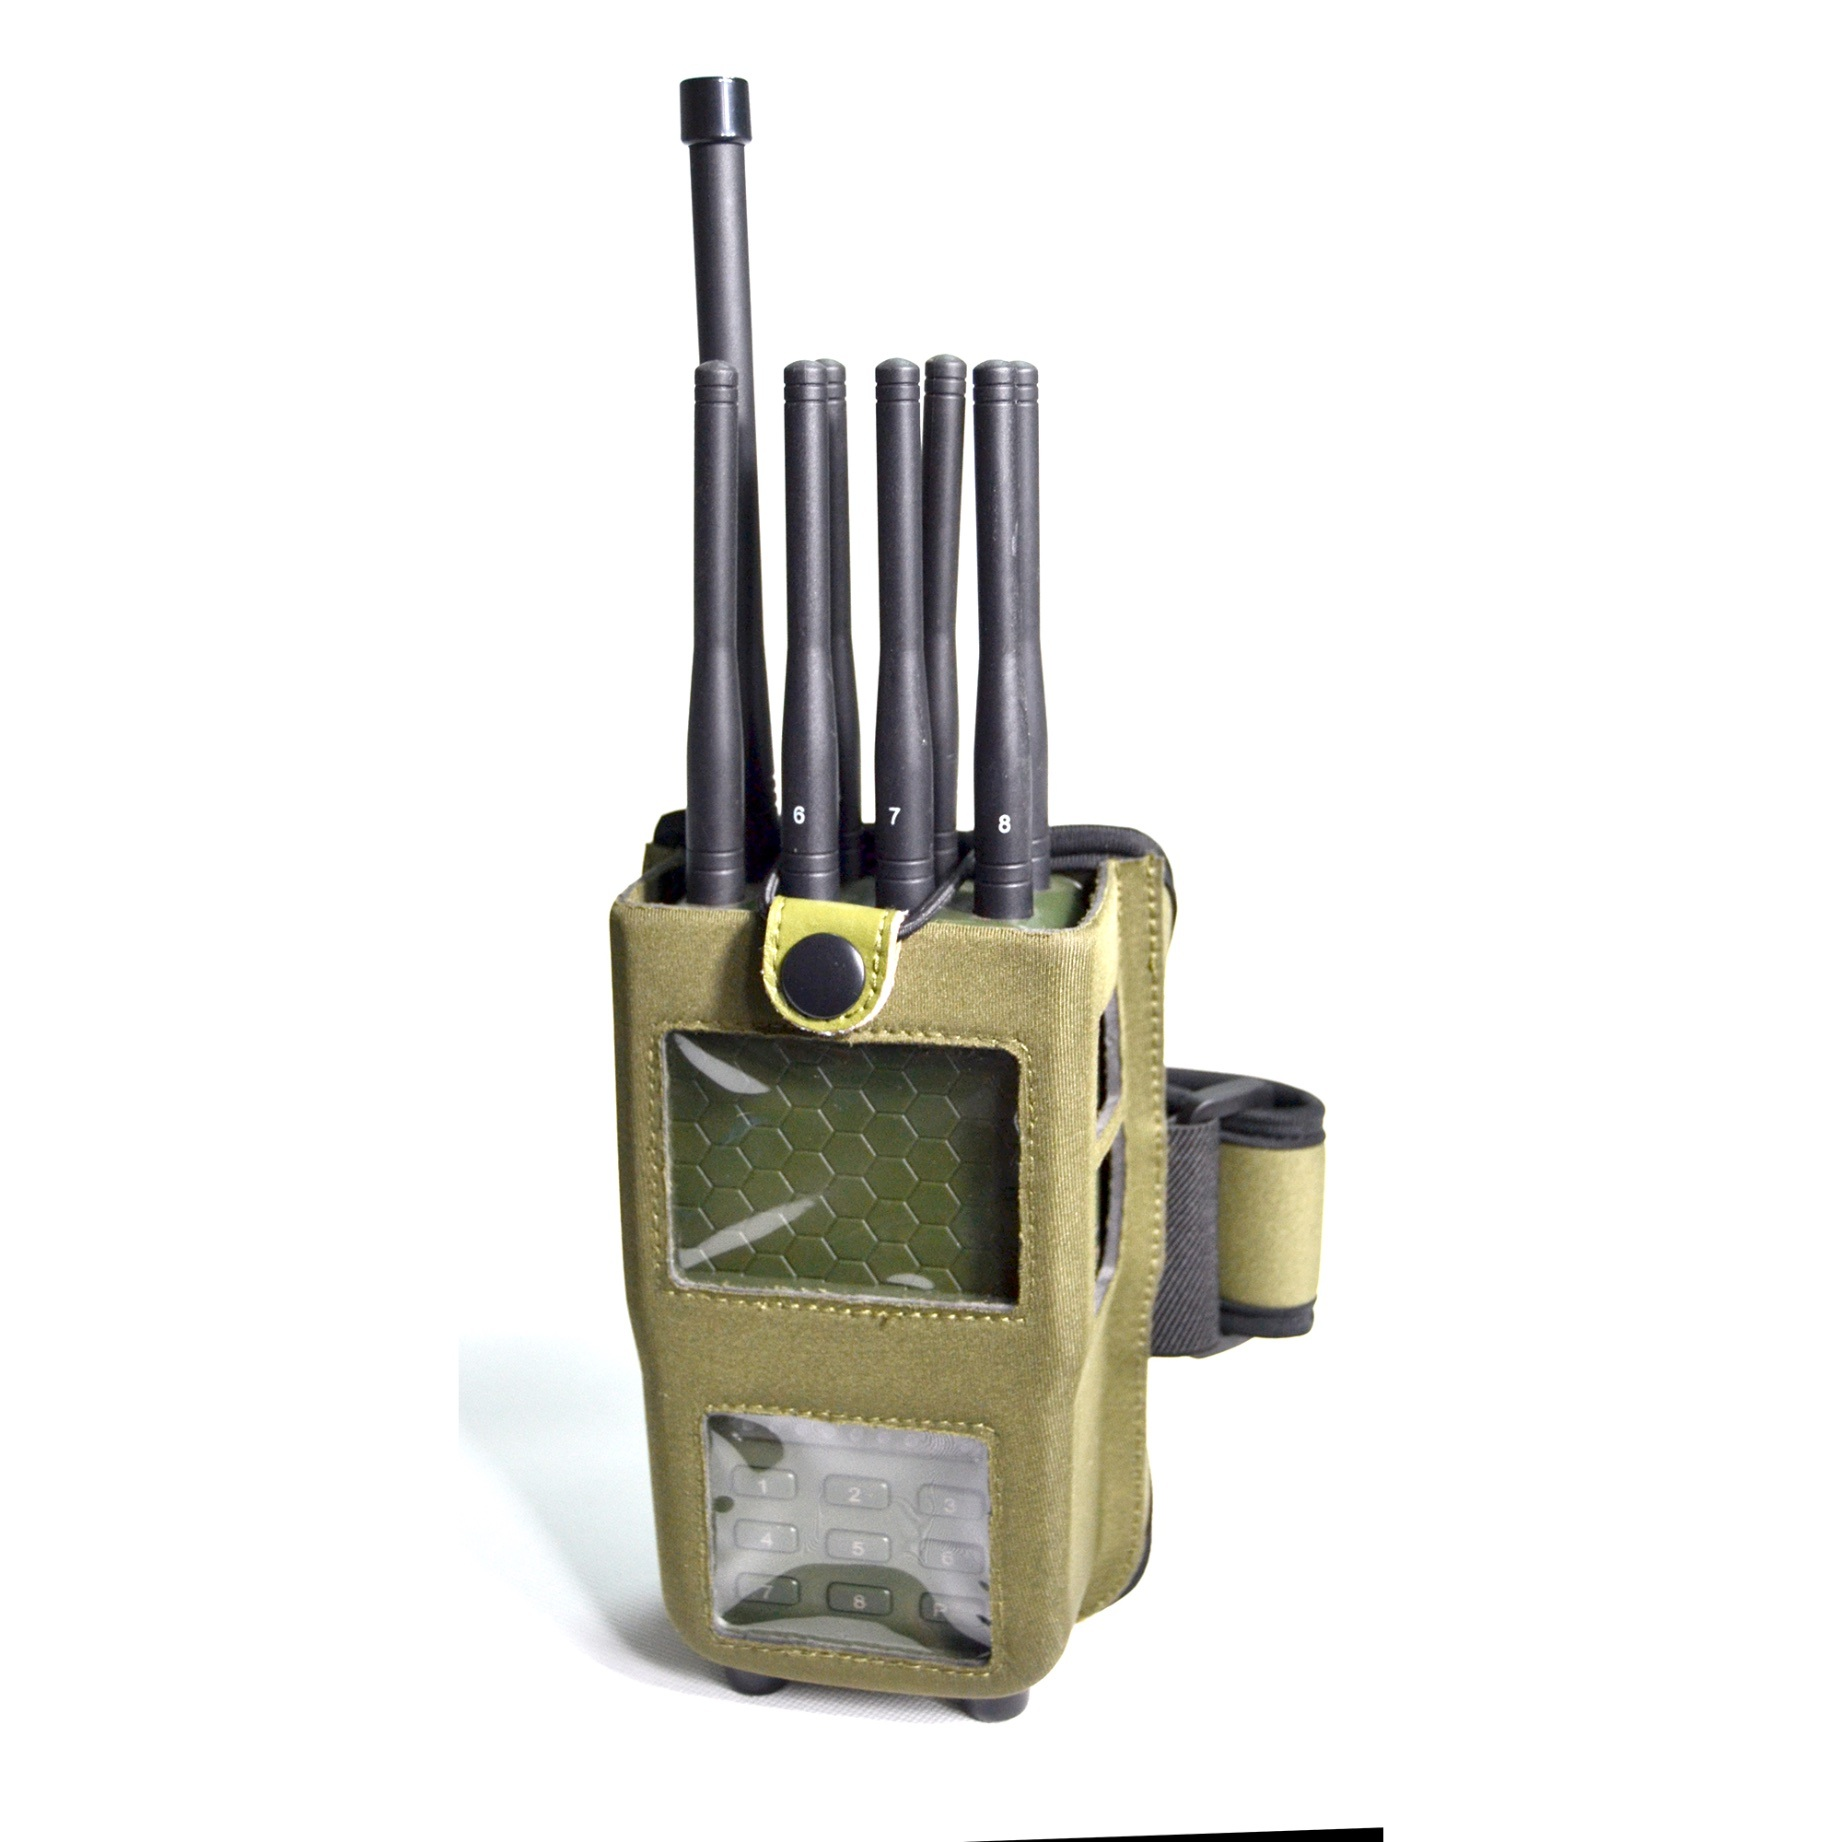 Newest Portable Hanheld High Power 8-Channel Cellphone 2g 3G 4G GSM CDMA Signal WiFi Radio Lojack Jammer,3G 4G Cell Phone, Lojack 173MHz,RC433/315MHz GPS Jammer